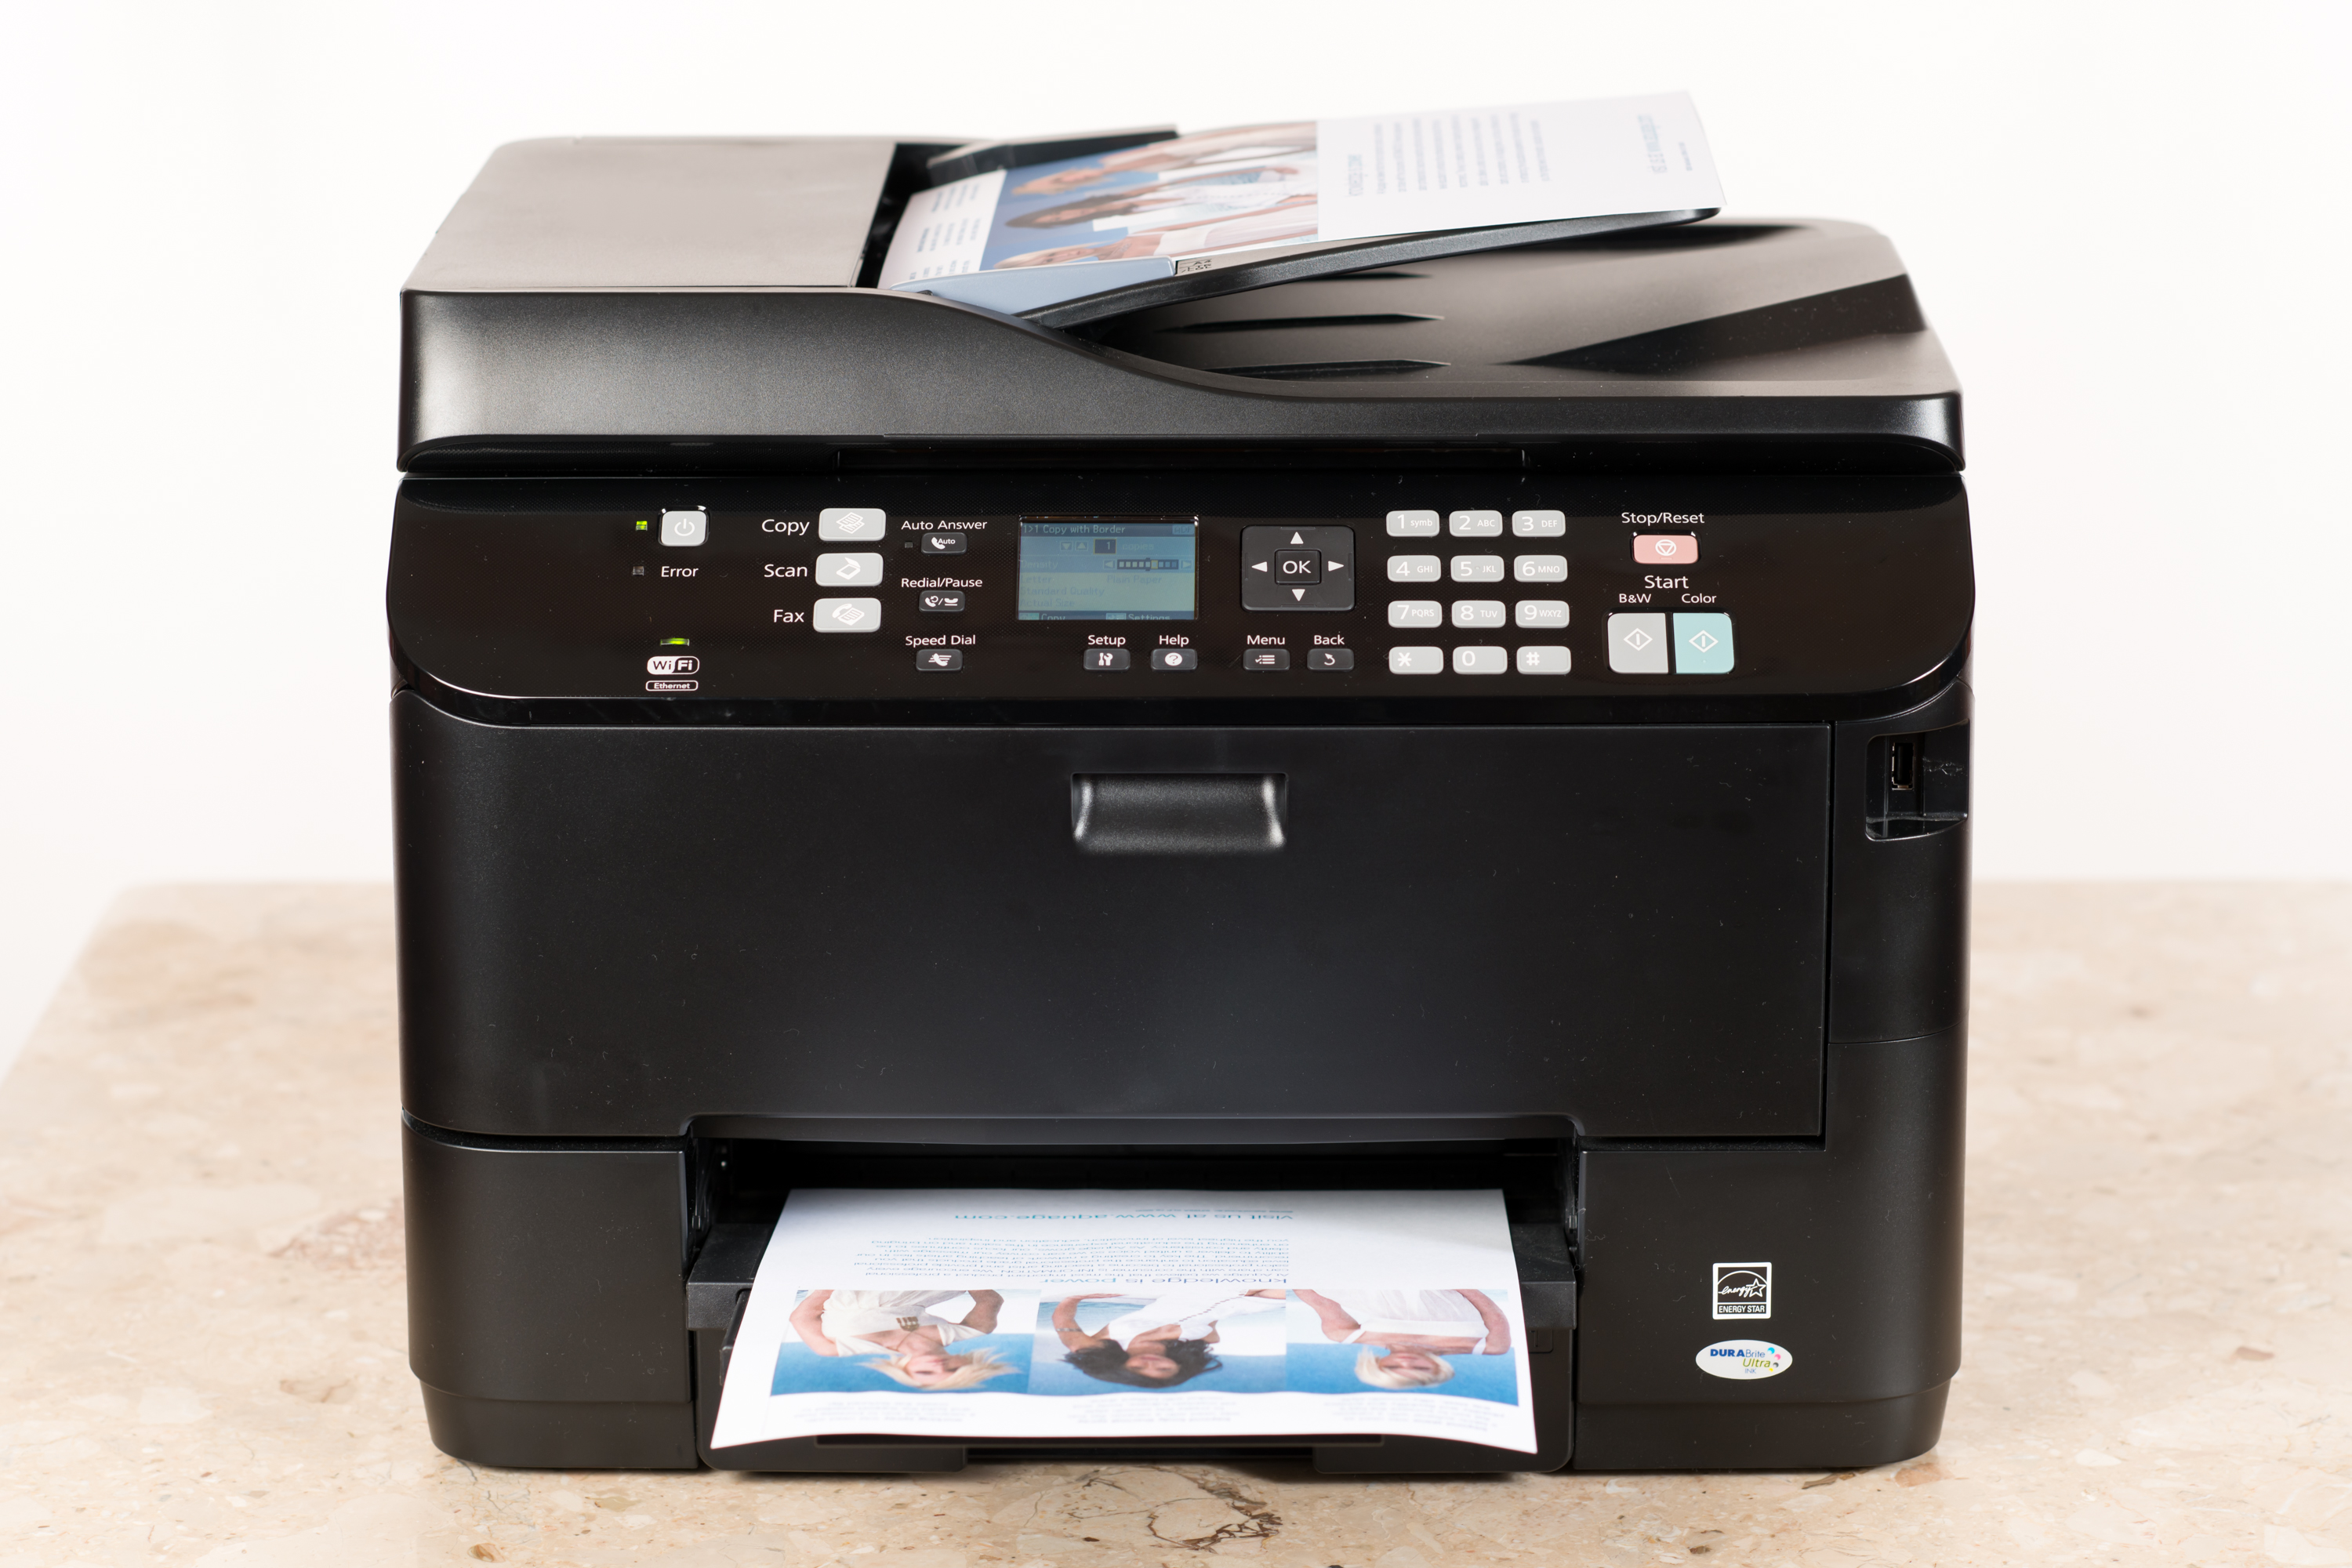 How to Make a Reverse Image on a Ricoh Copier | Bizfluent